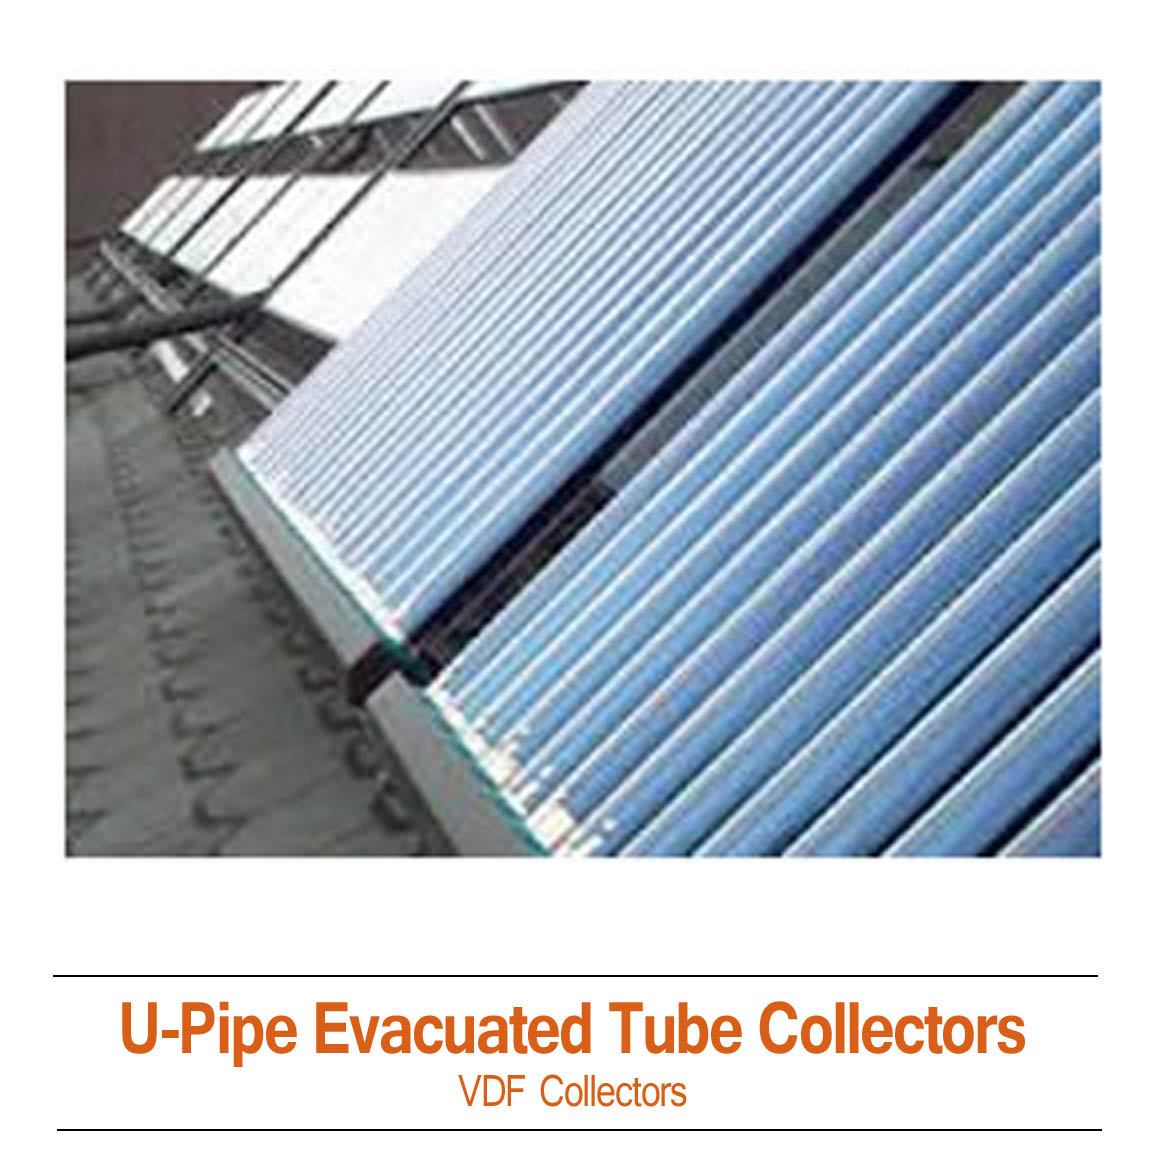 ThermoPower U-Pipe Direct Flow Evacuated Tube Solar Collectors